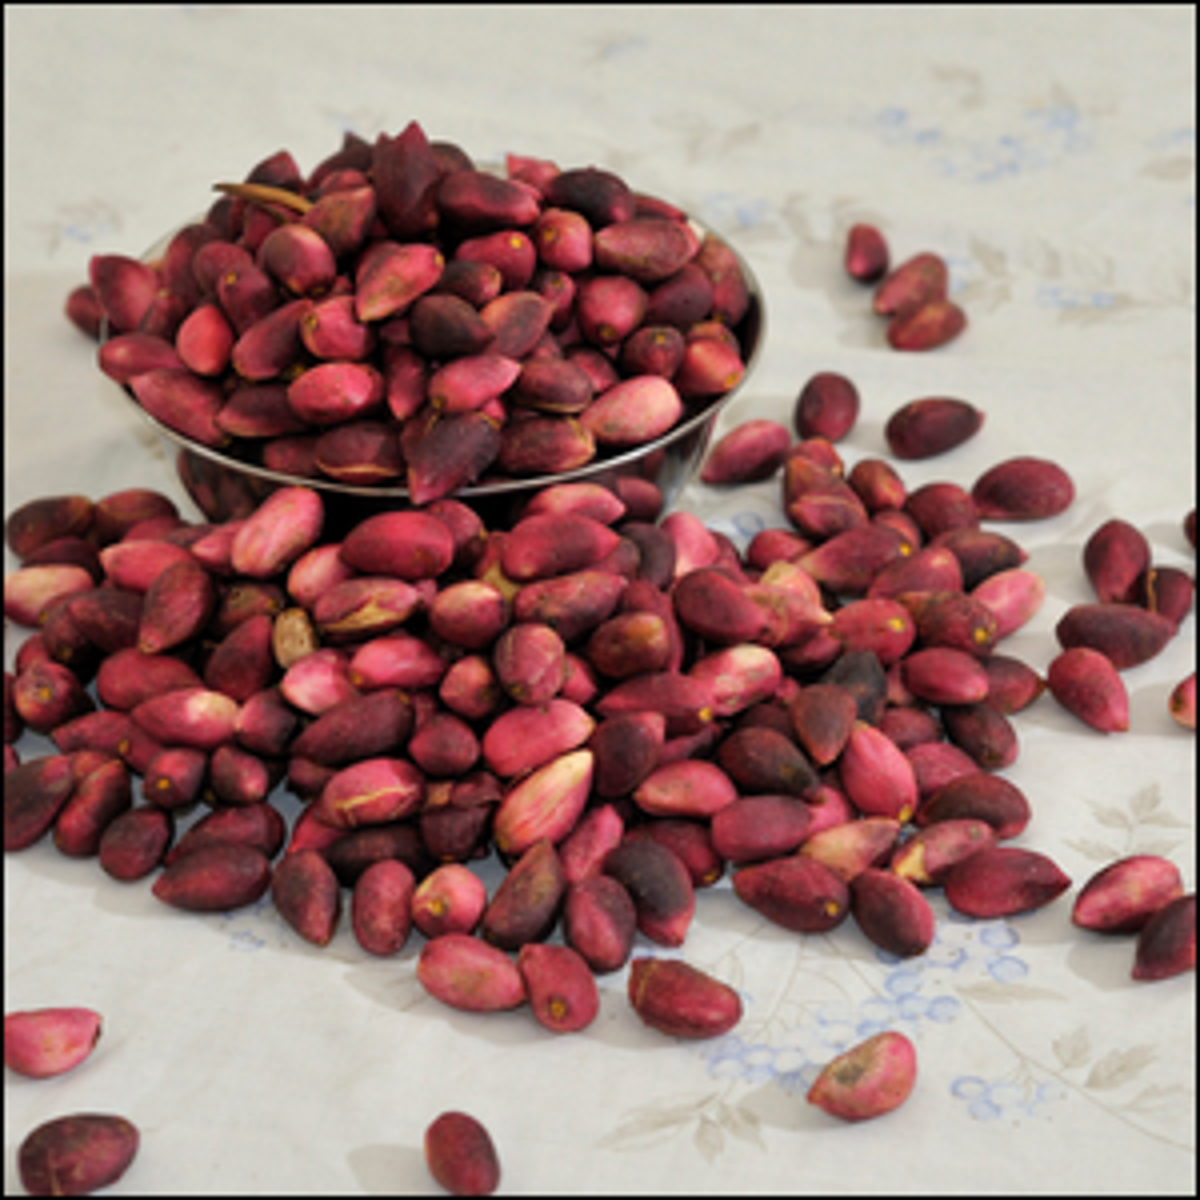 An overflowing bowl of raw pistachio nuts.